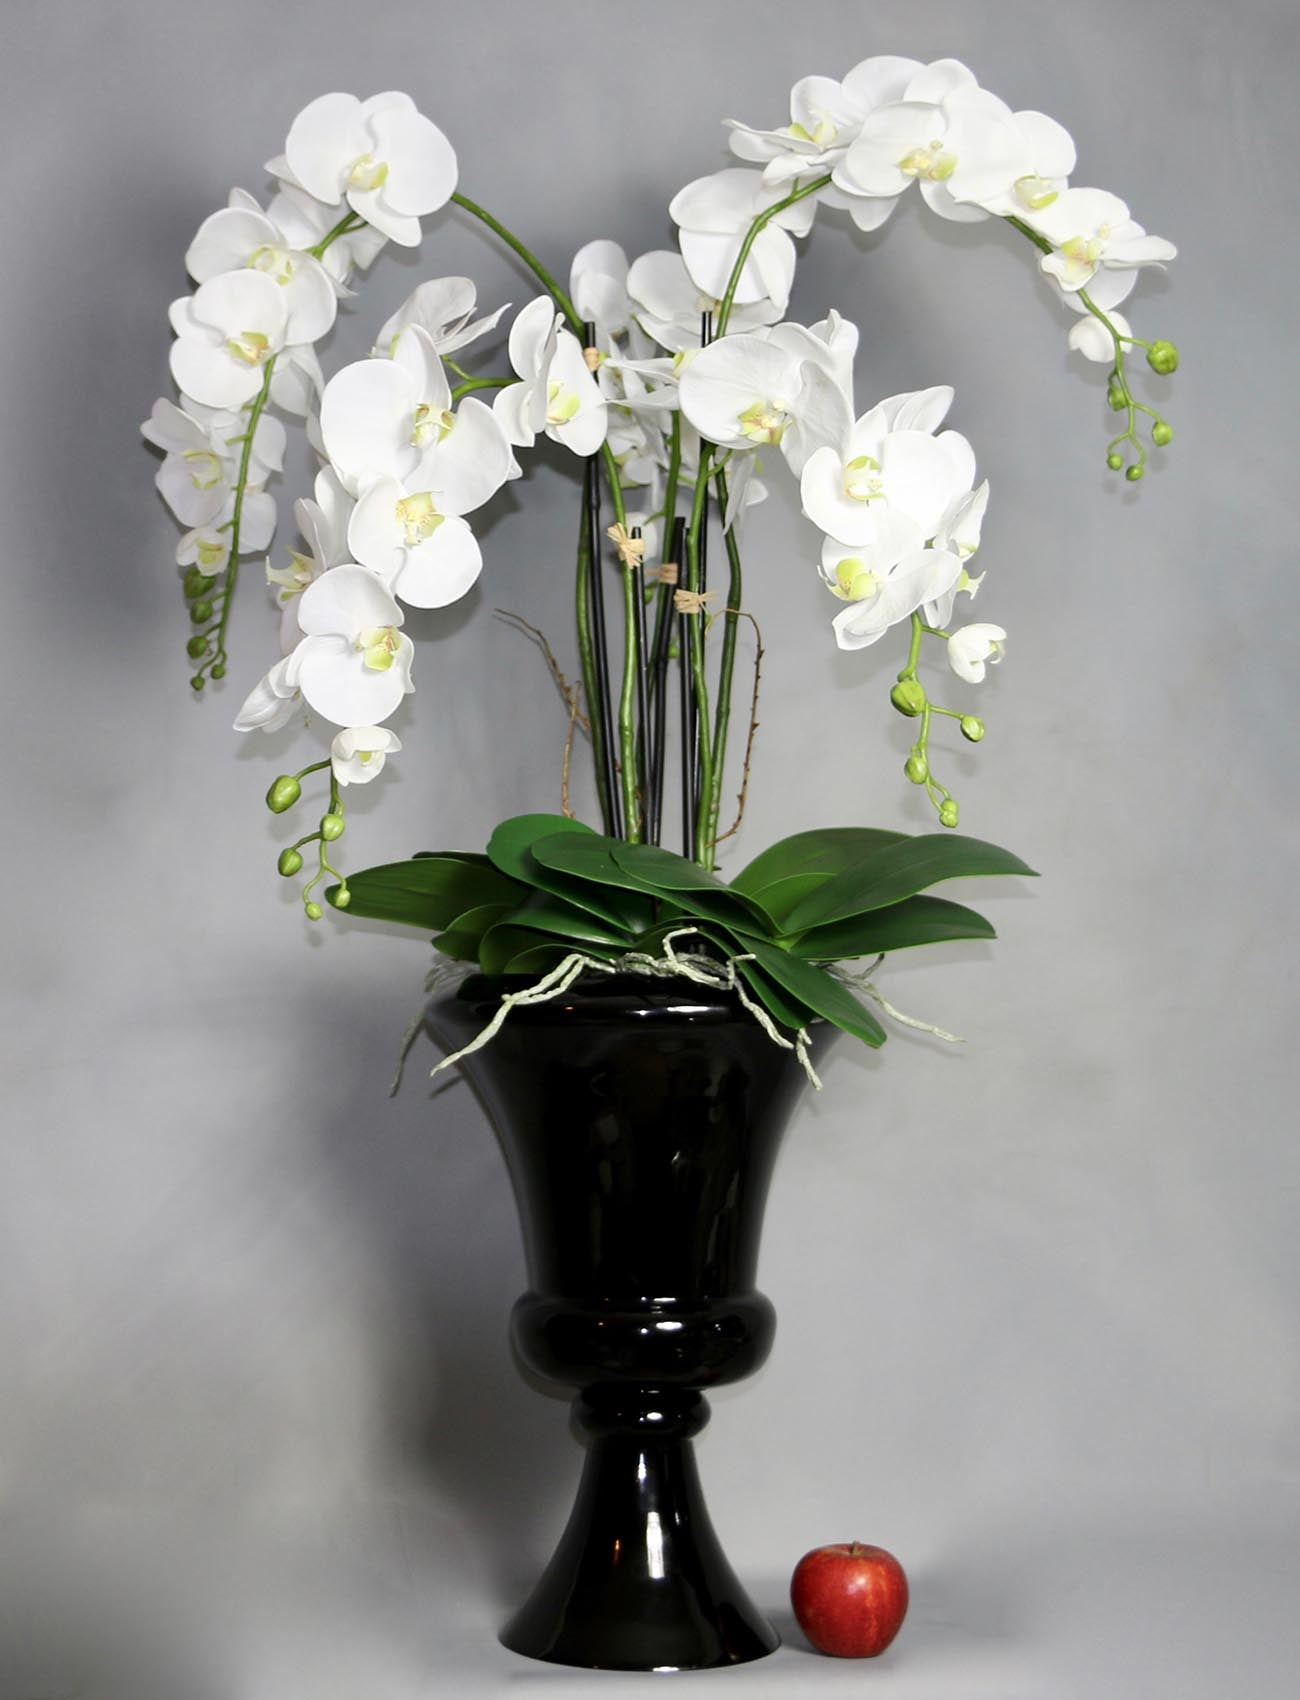 Luxury Artificial Flowers for Interior Design Projects